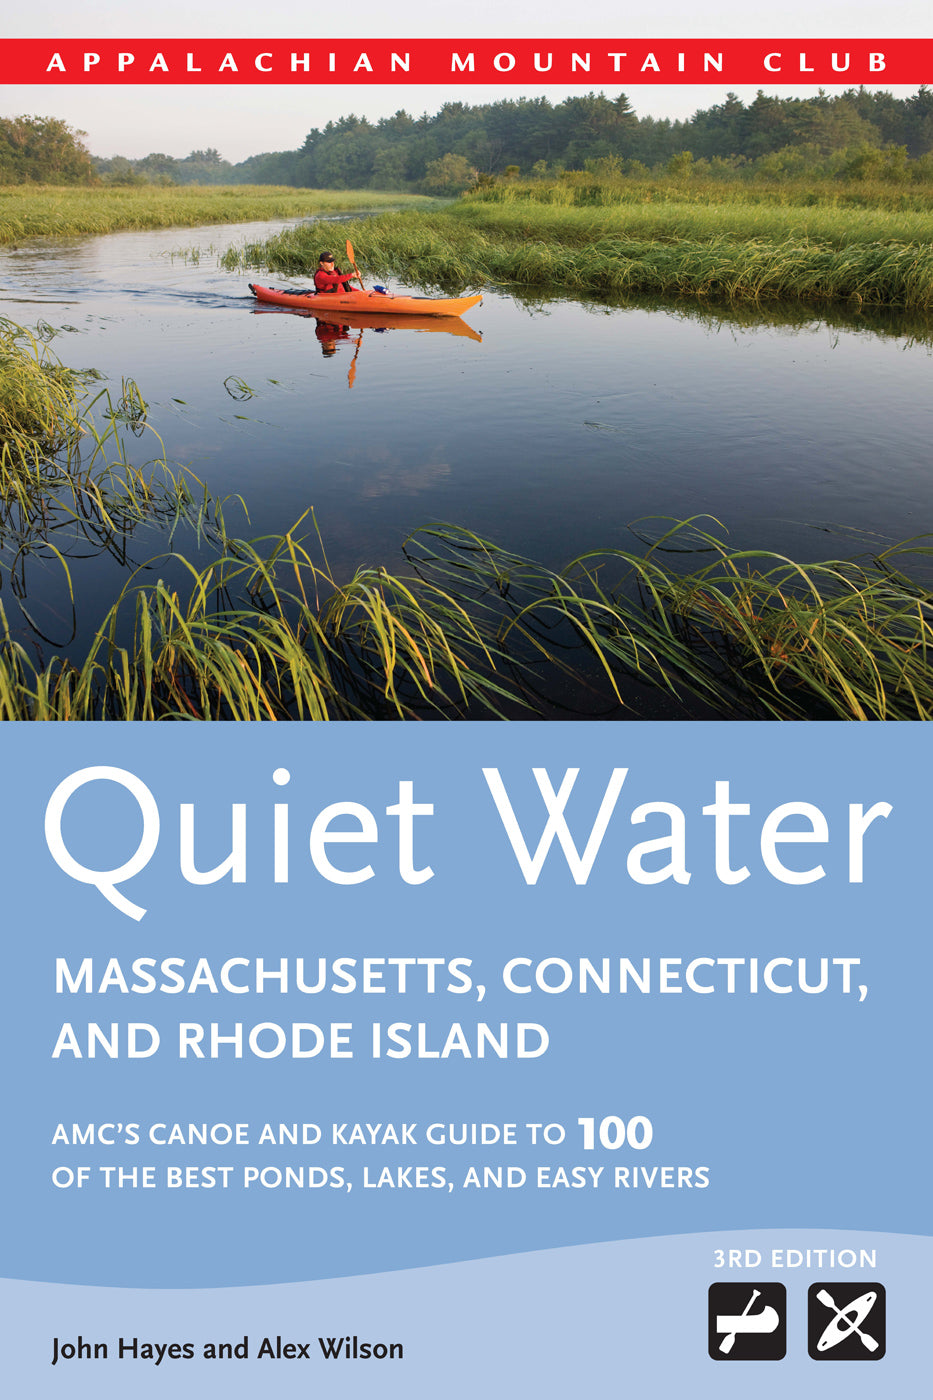 Quiet Water Massachusetts, Connecticut, and Rhode Island, 3rd edition